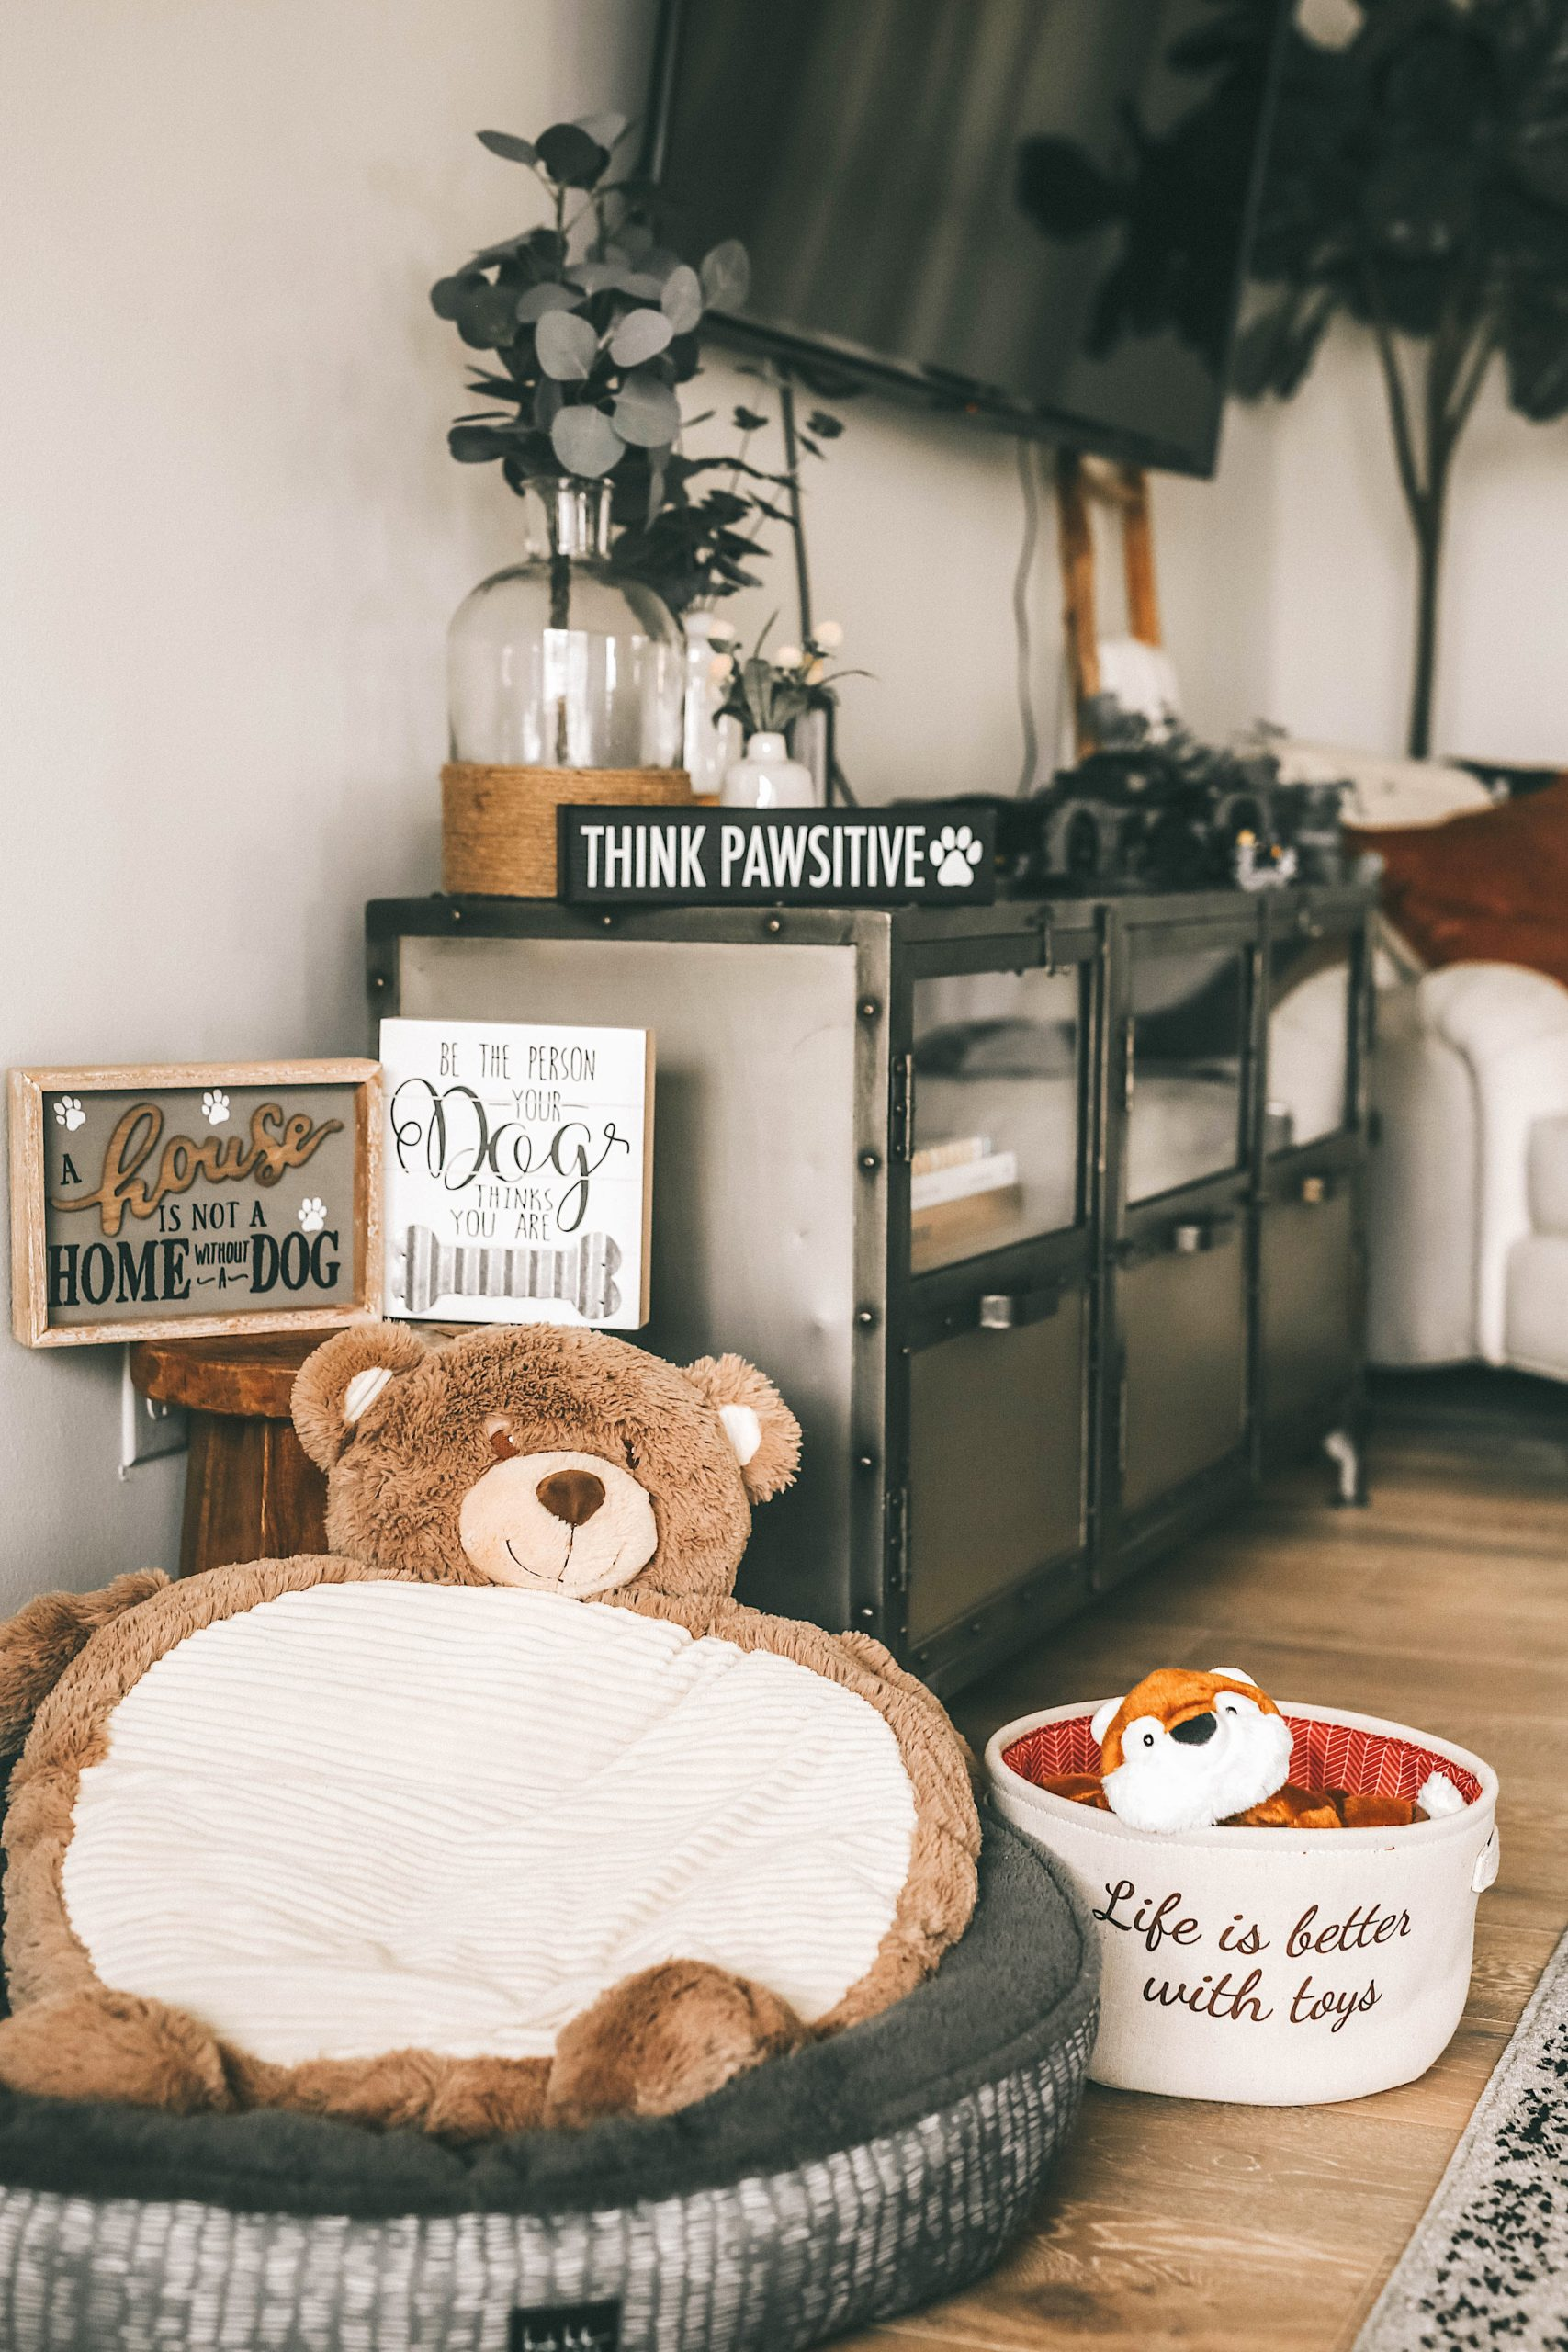 How to Pamper Your Pet by popular Nashville life and style blog, Dressed to Kill: image of a bear shaped dog bed, a grey dog bed, a fabric toy basket, a tiger toy, and various dog signs from Tuesday Morning.